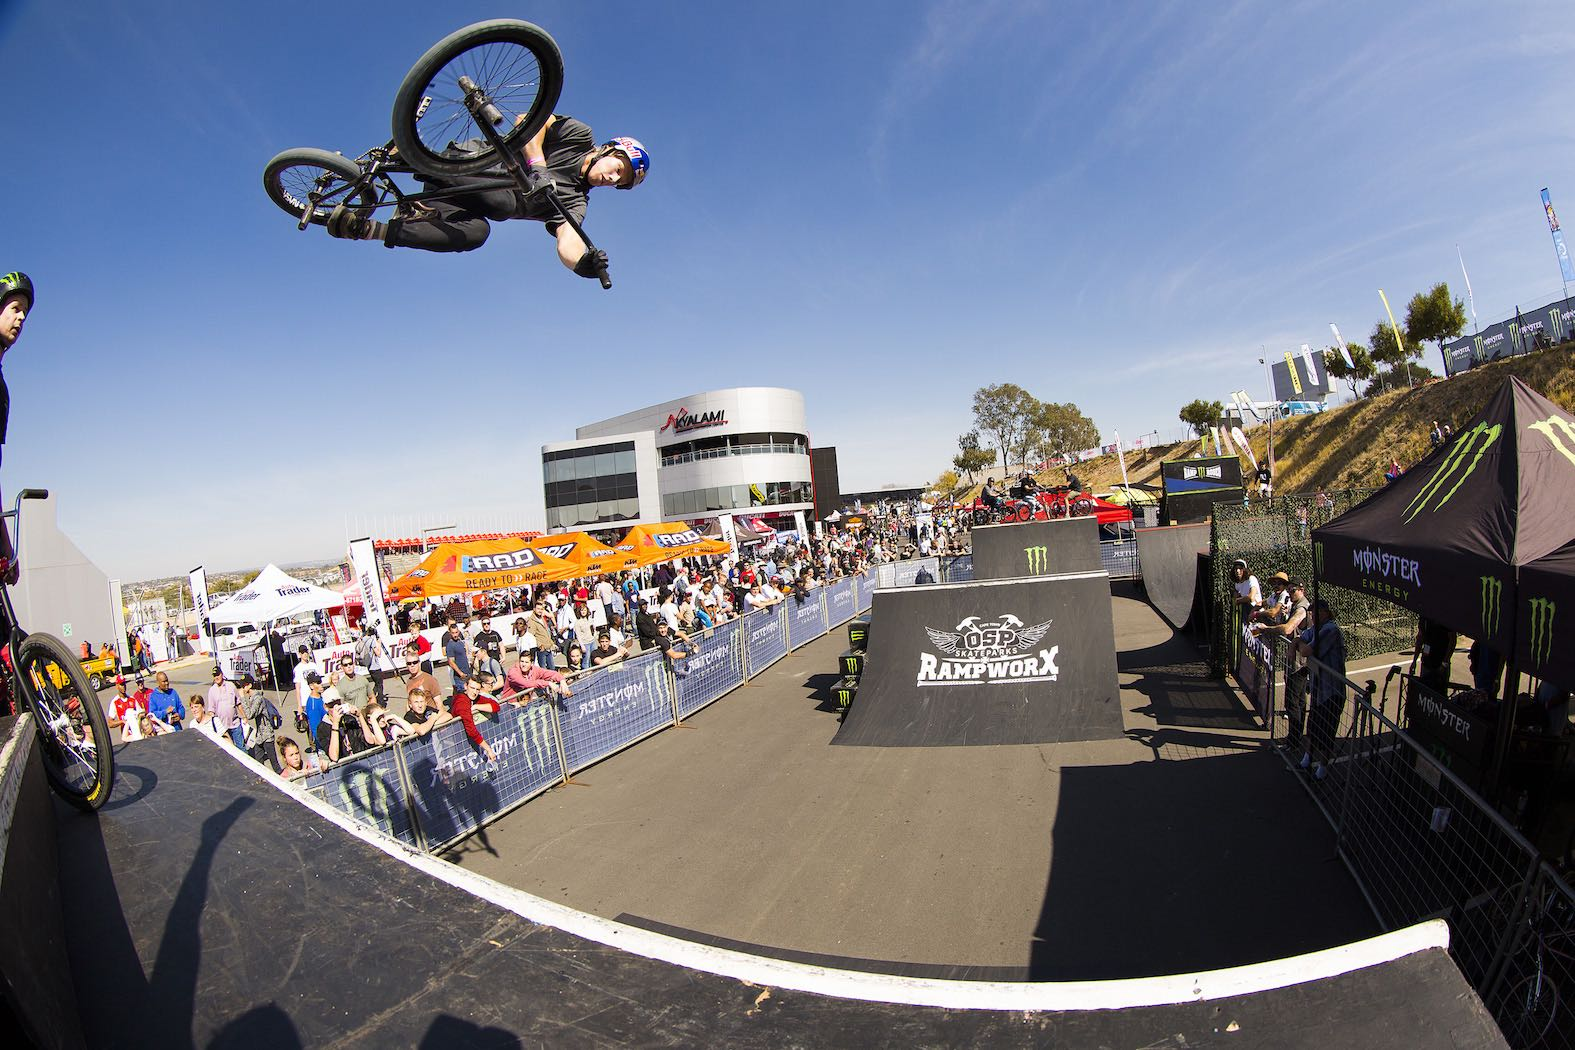 Murray Loubser riding his way to victory at the Ramp Rodeo Invitational 1 BMX contest